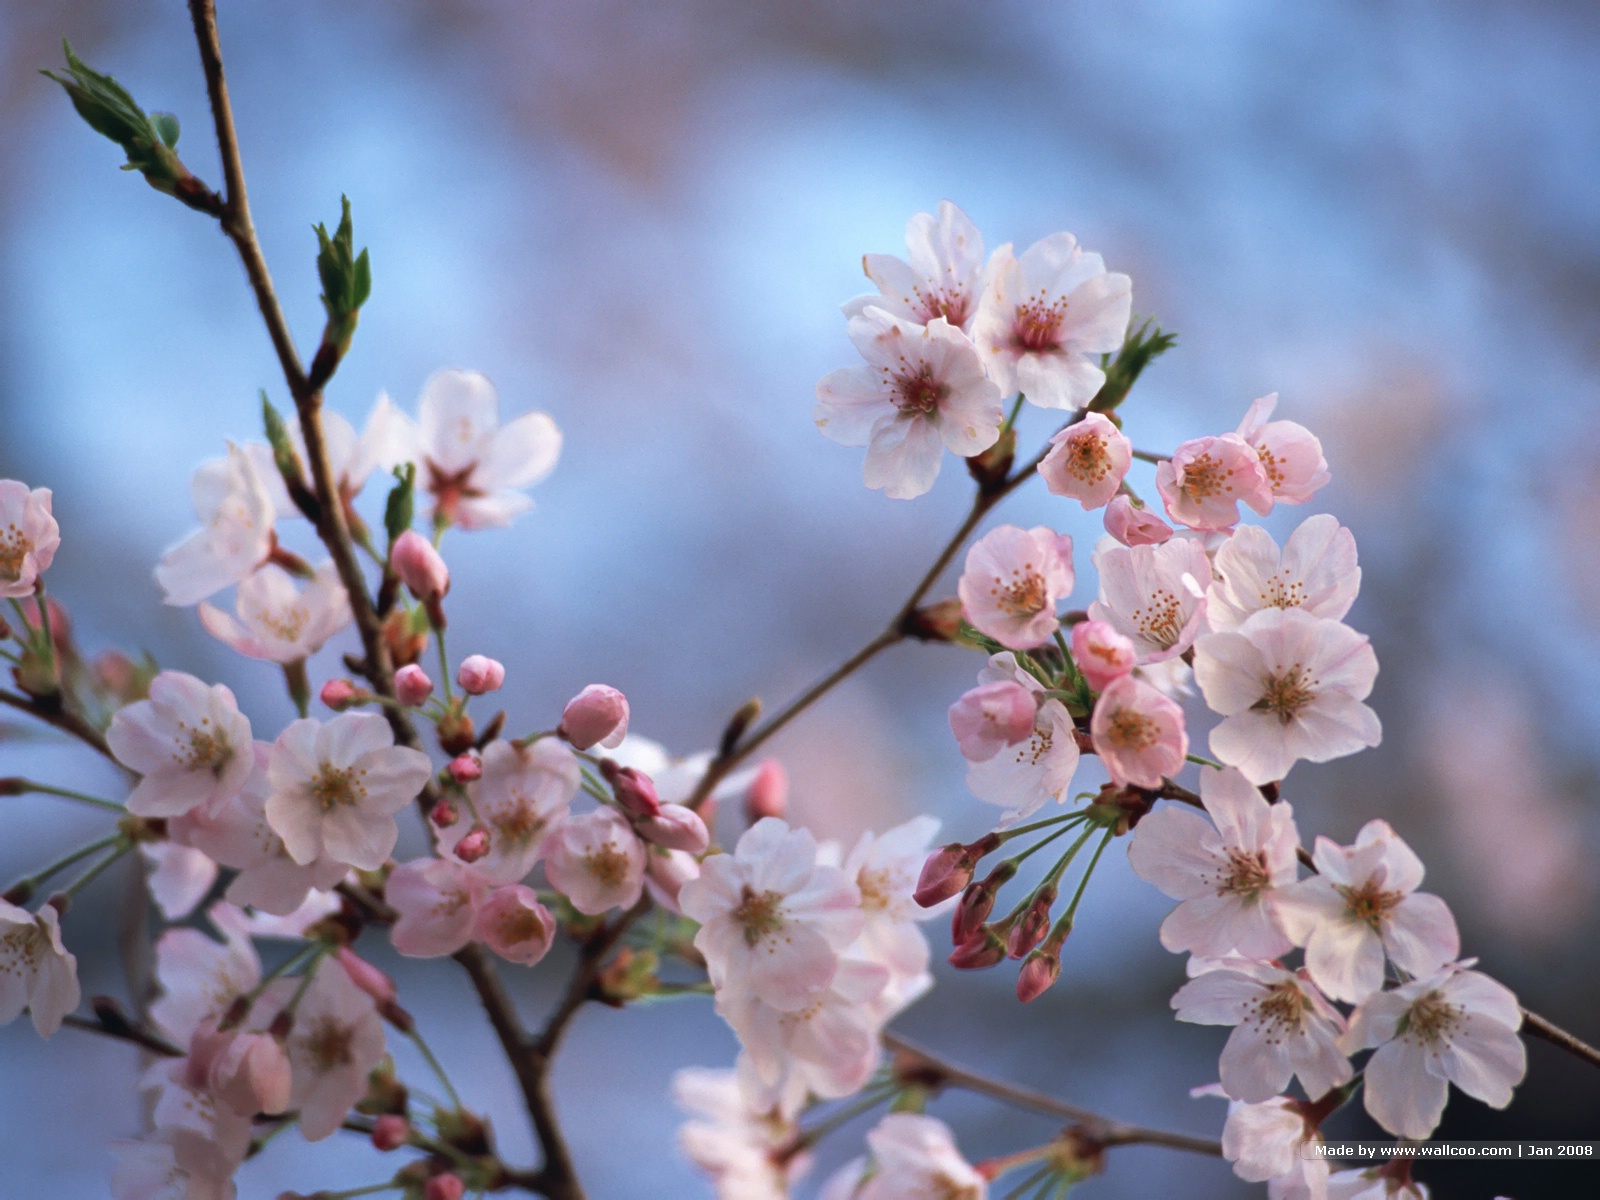 Must see Wallpaper High Resolution Cherry Blossom - Japanese_Cherry_Blossom_wallpapers_GA036  Trends_28143.jpg